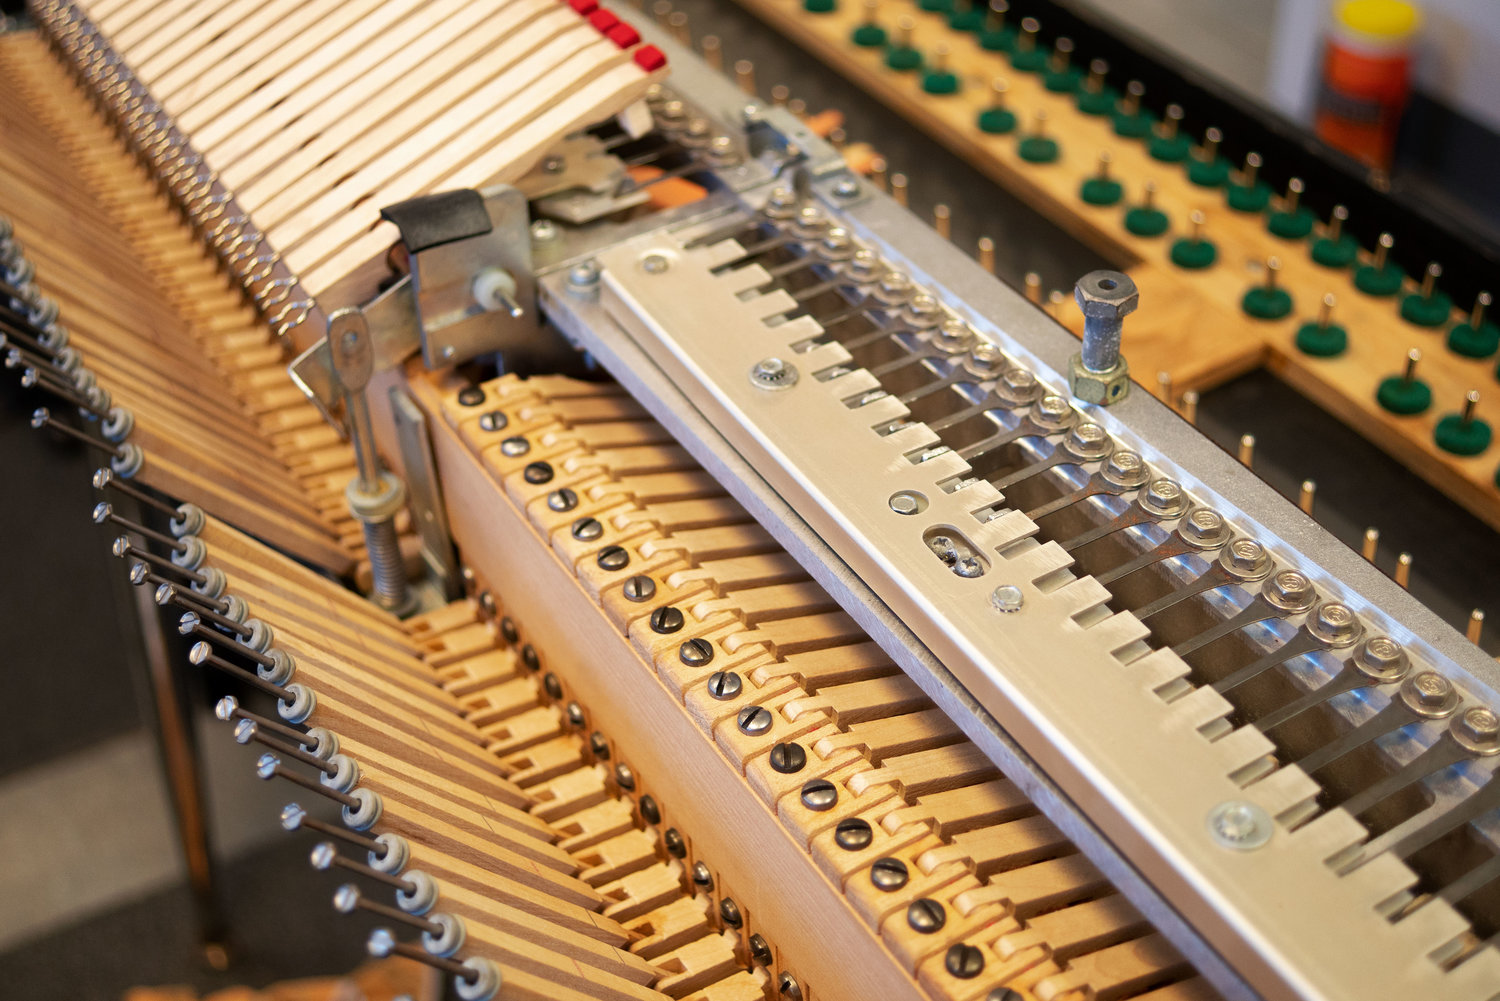 With the dampers removed from this 200-series Wurlitzer, you can clearly see the reeds and the pickup.